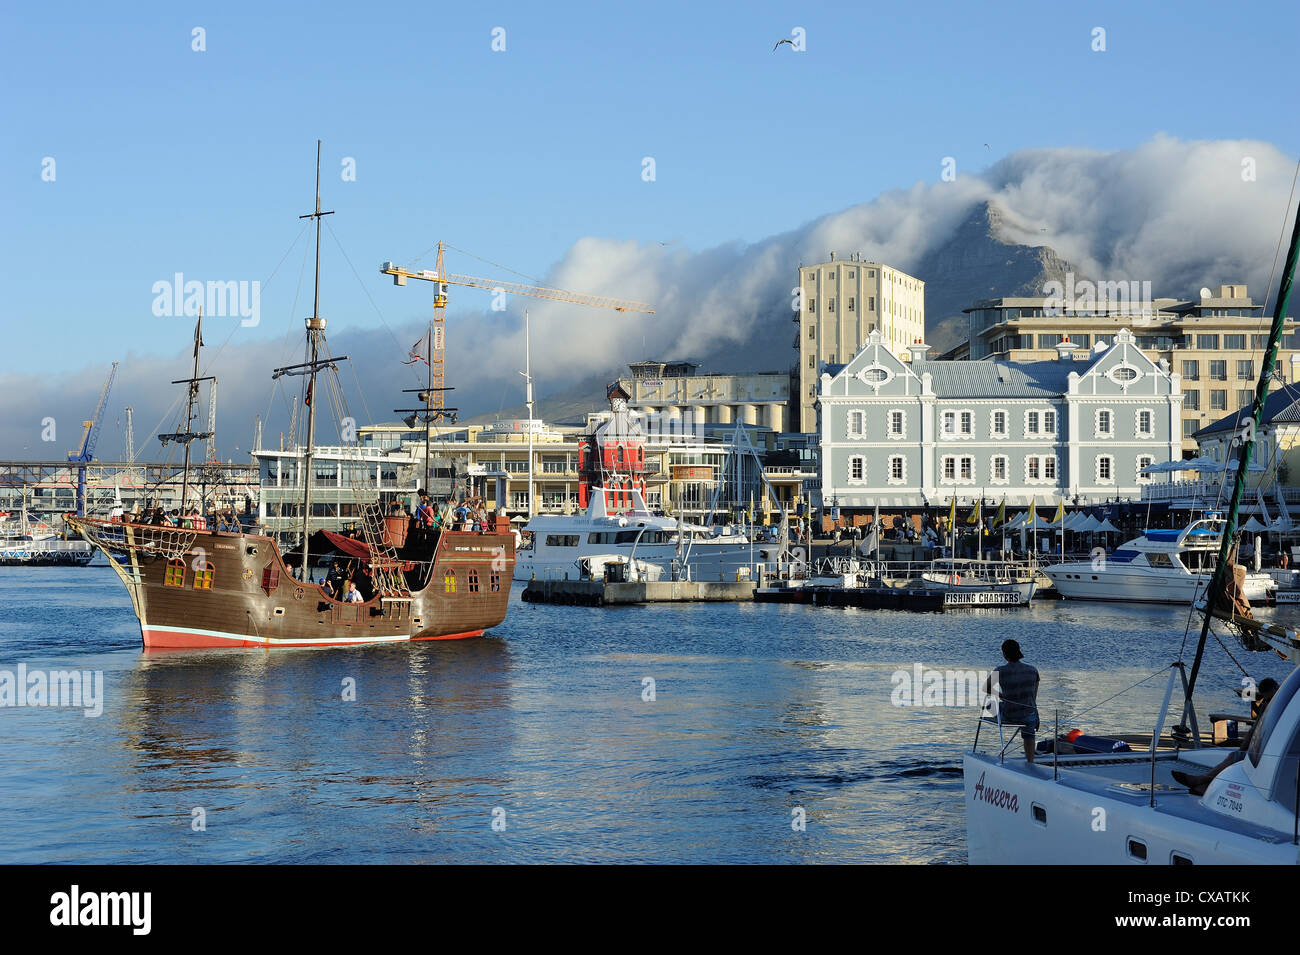 Replica pirate ship, Waterfront harbour, Table Mountain in background, Cape Town, South Africa, Africa - Stock Image